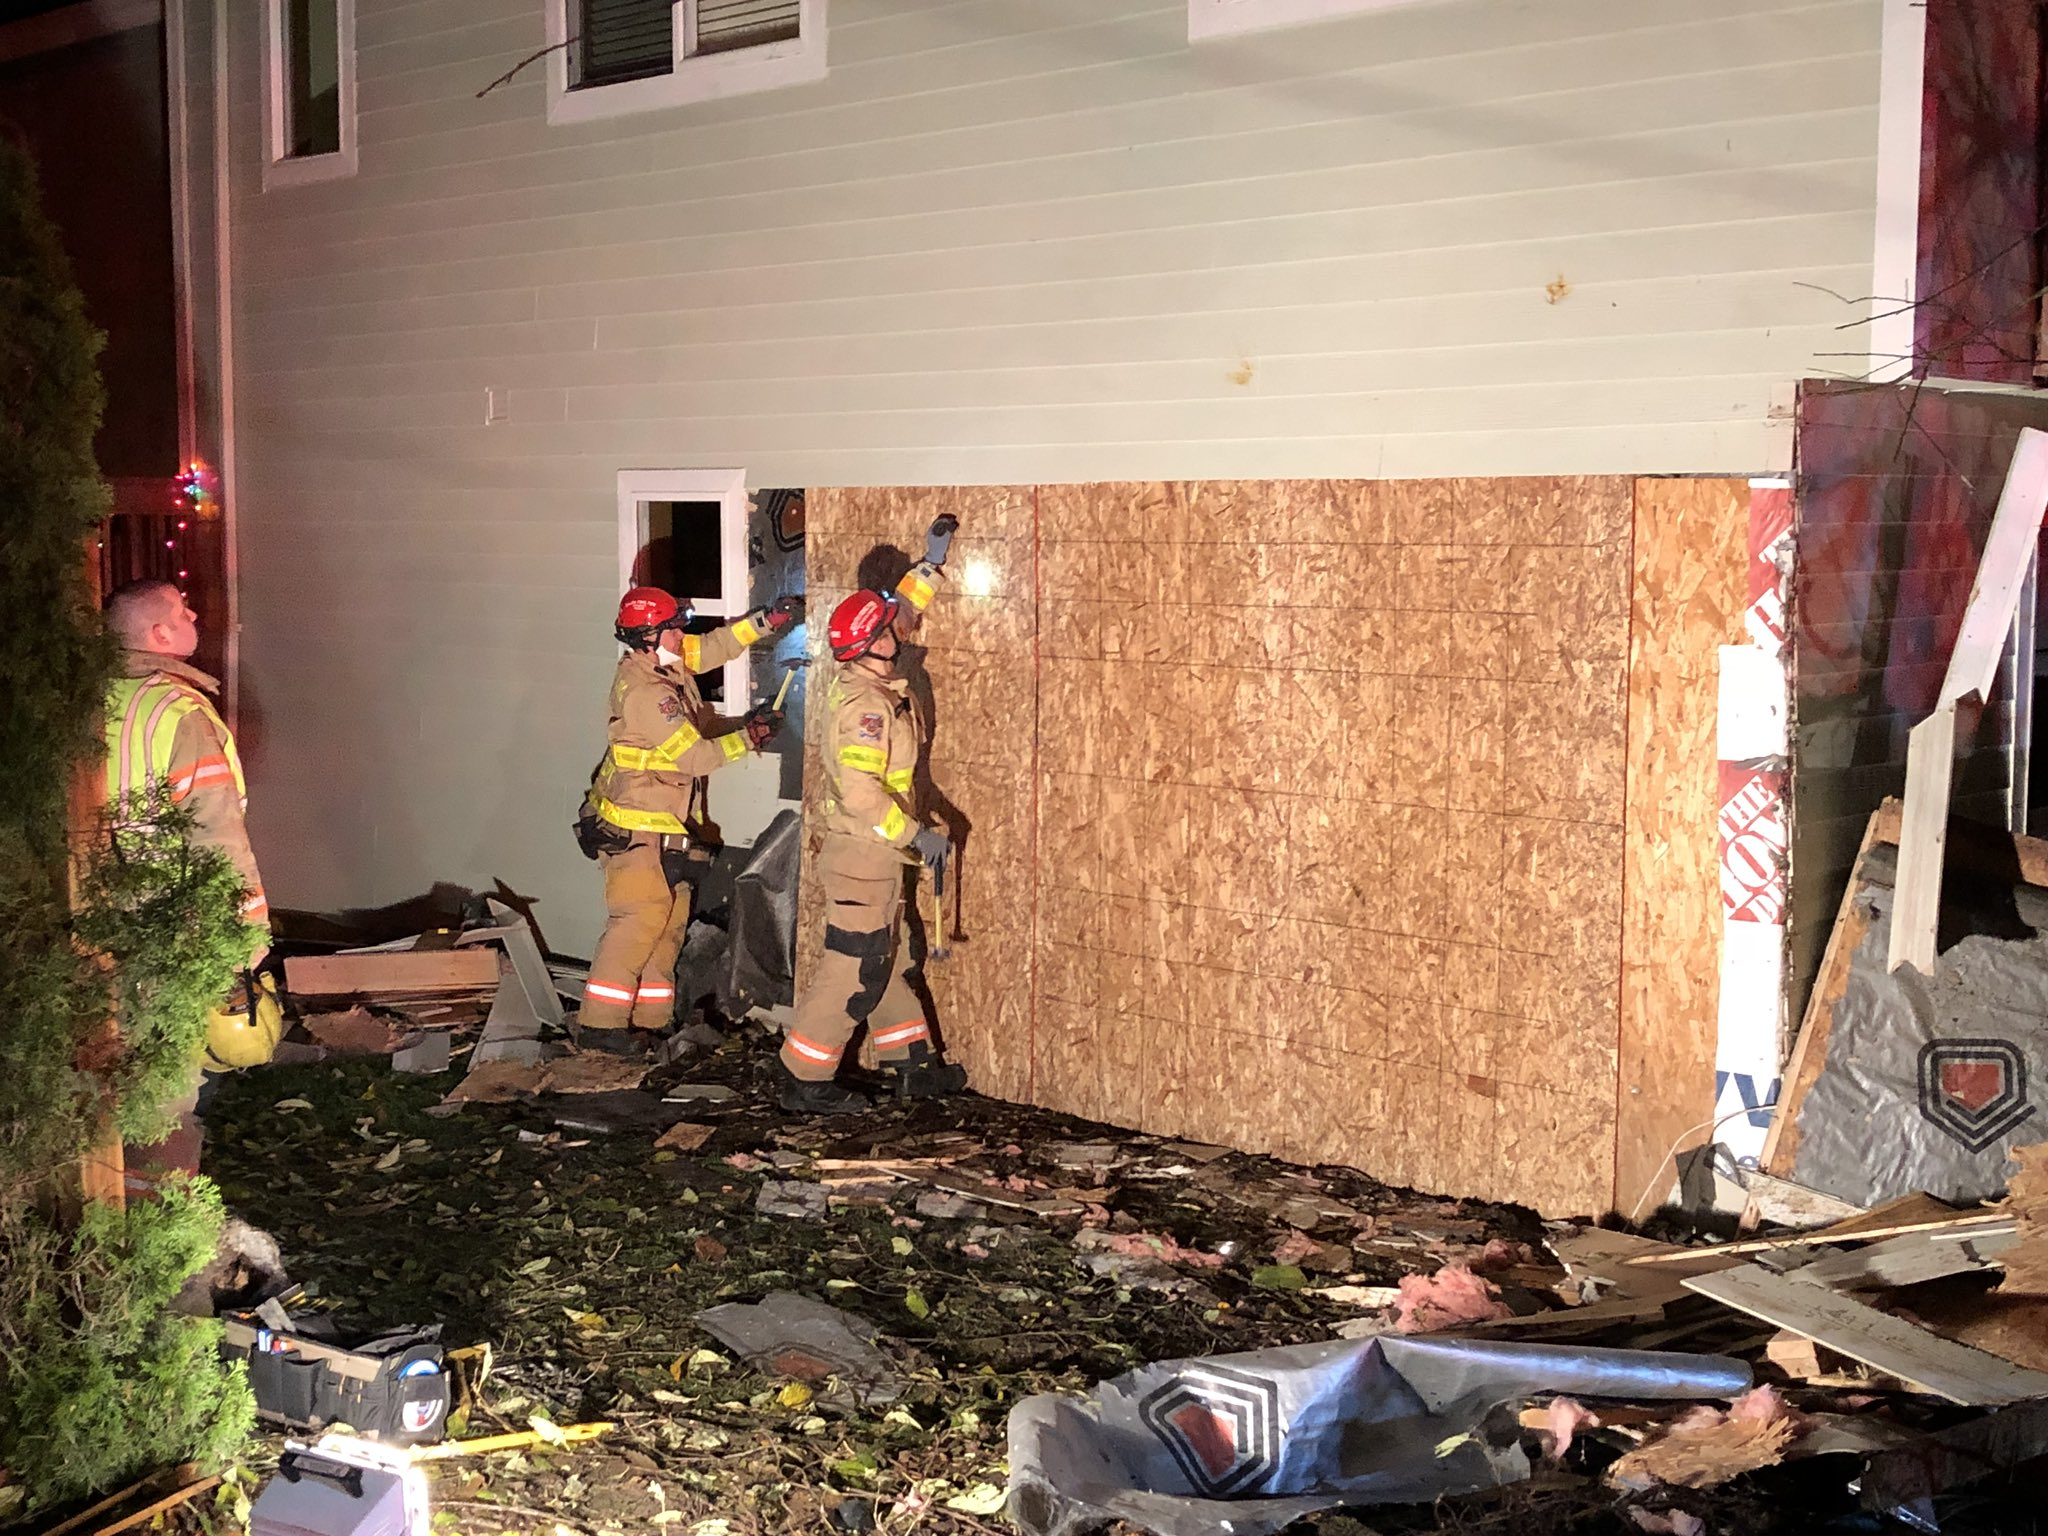 South King Fire and Rescue crews worked to patch up the house after a car drove through one of the walls early Friday morning. (Photo credit: South King Fire and Rescue)